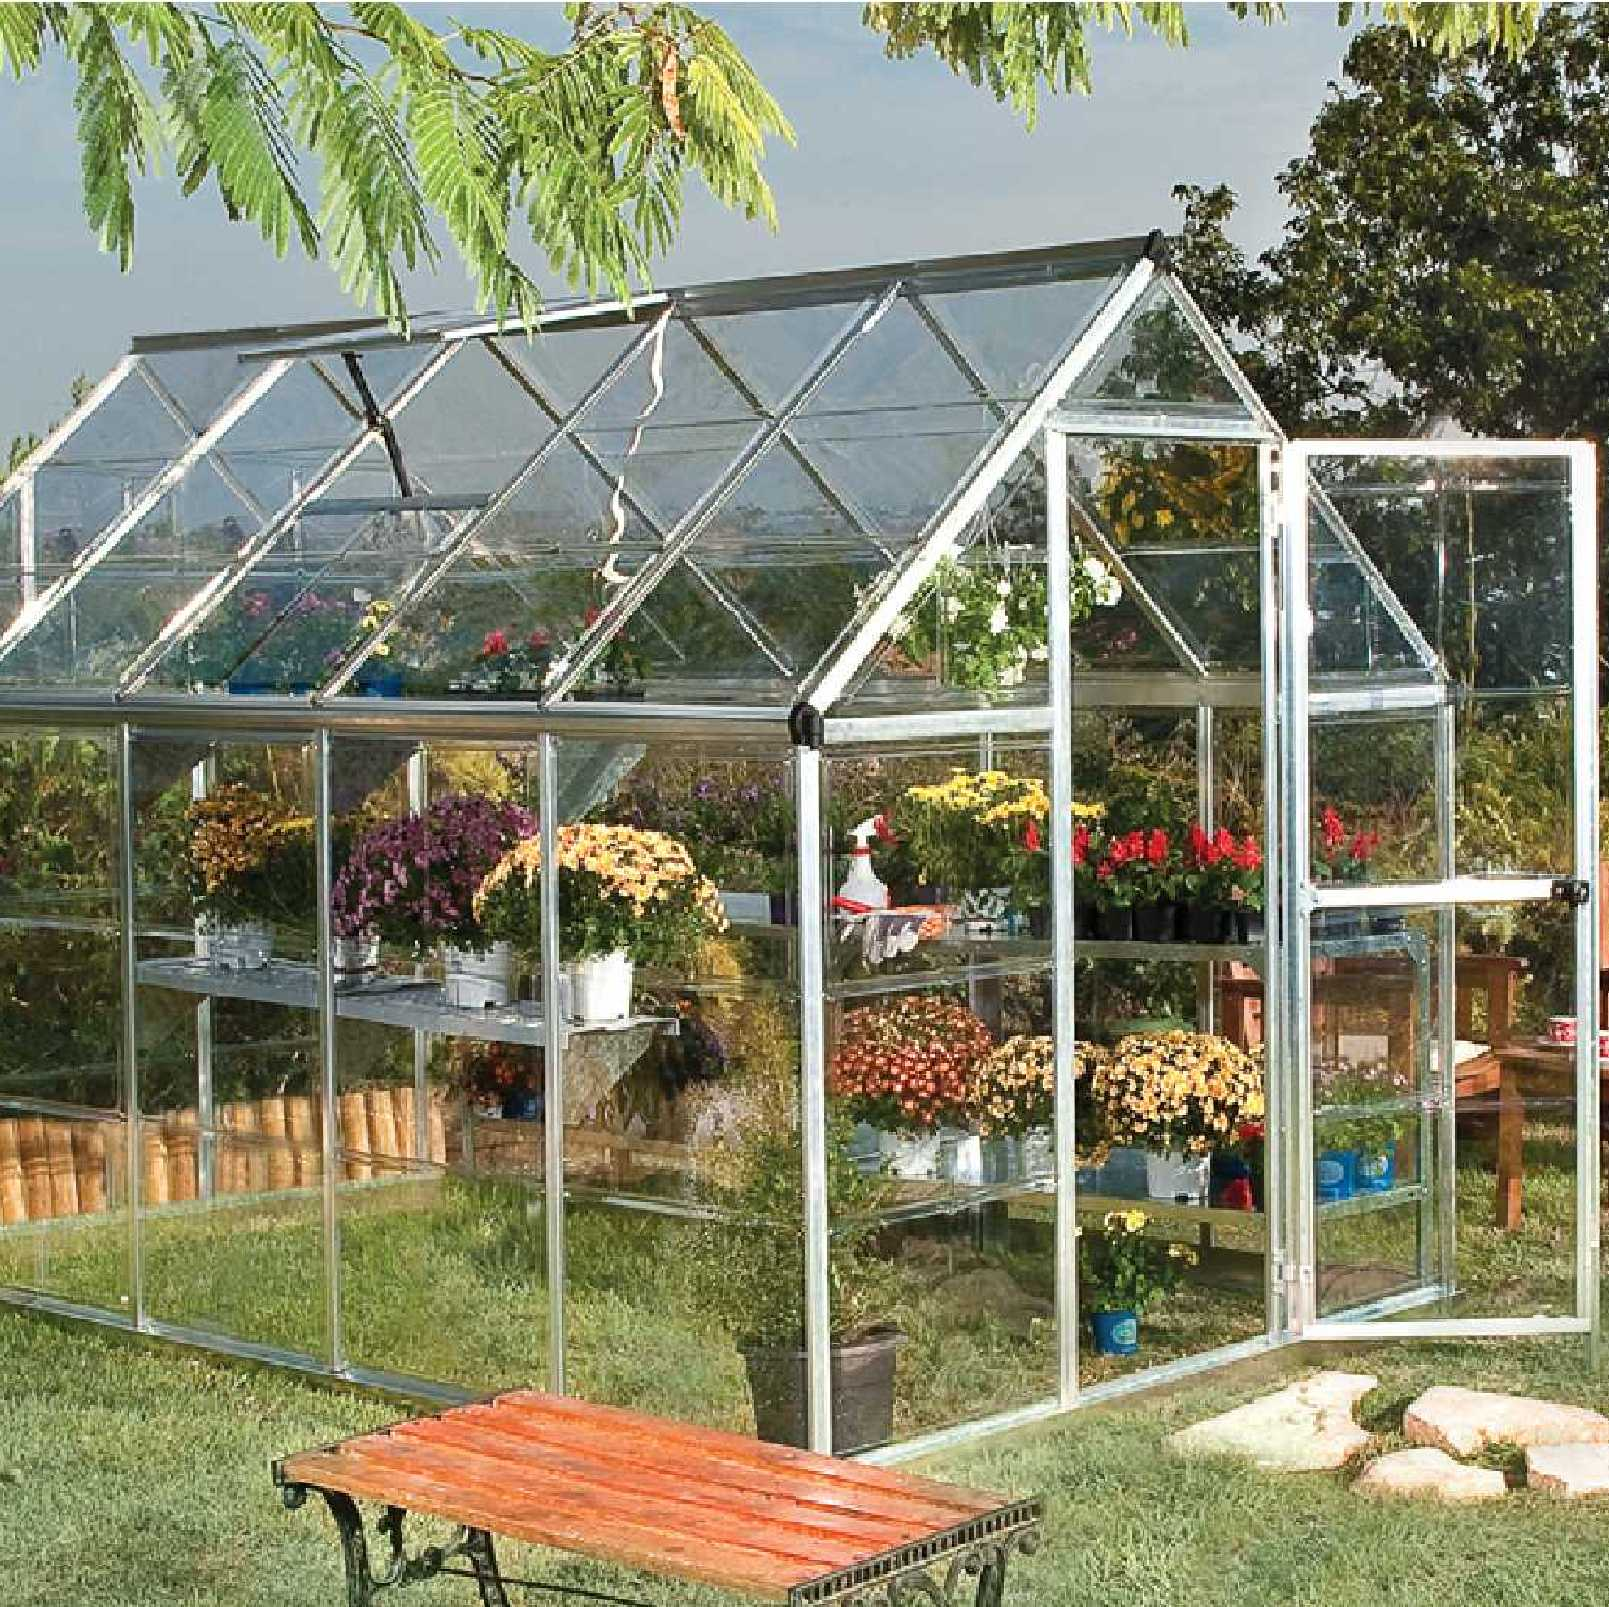 Greenhouse, Silver aluminium frame,6ft. X 8ft. (6' x 8')